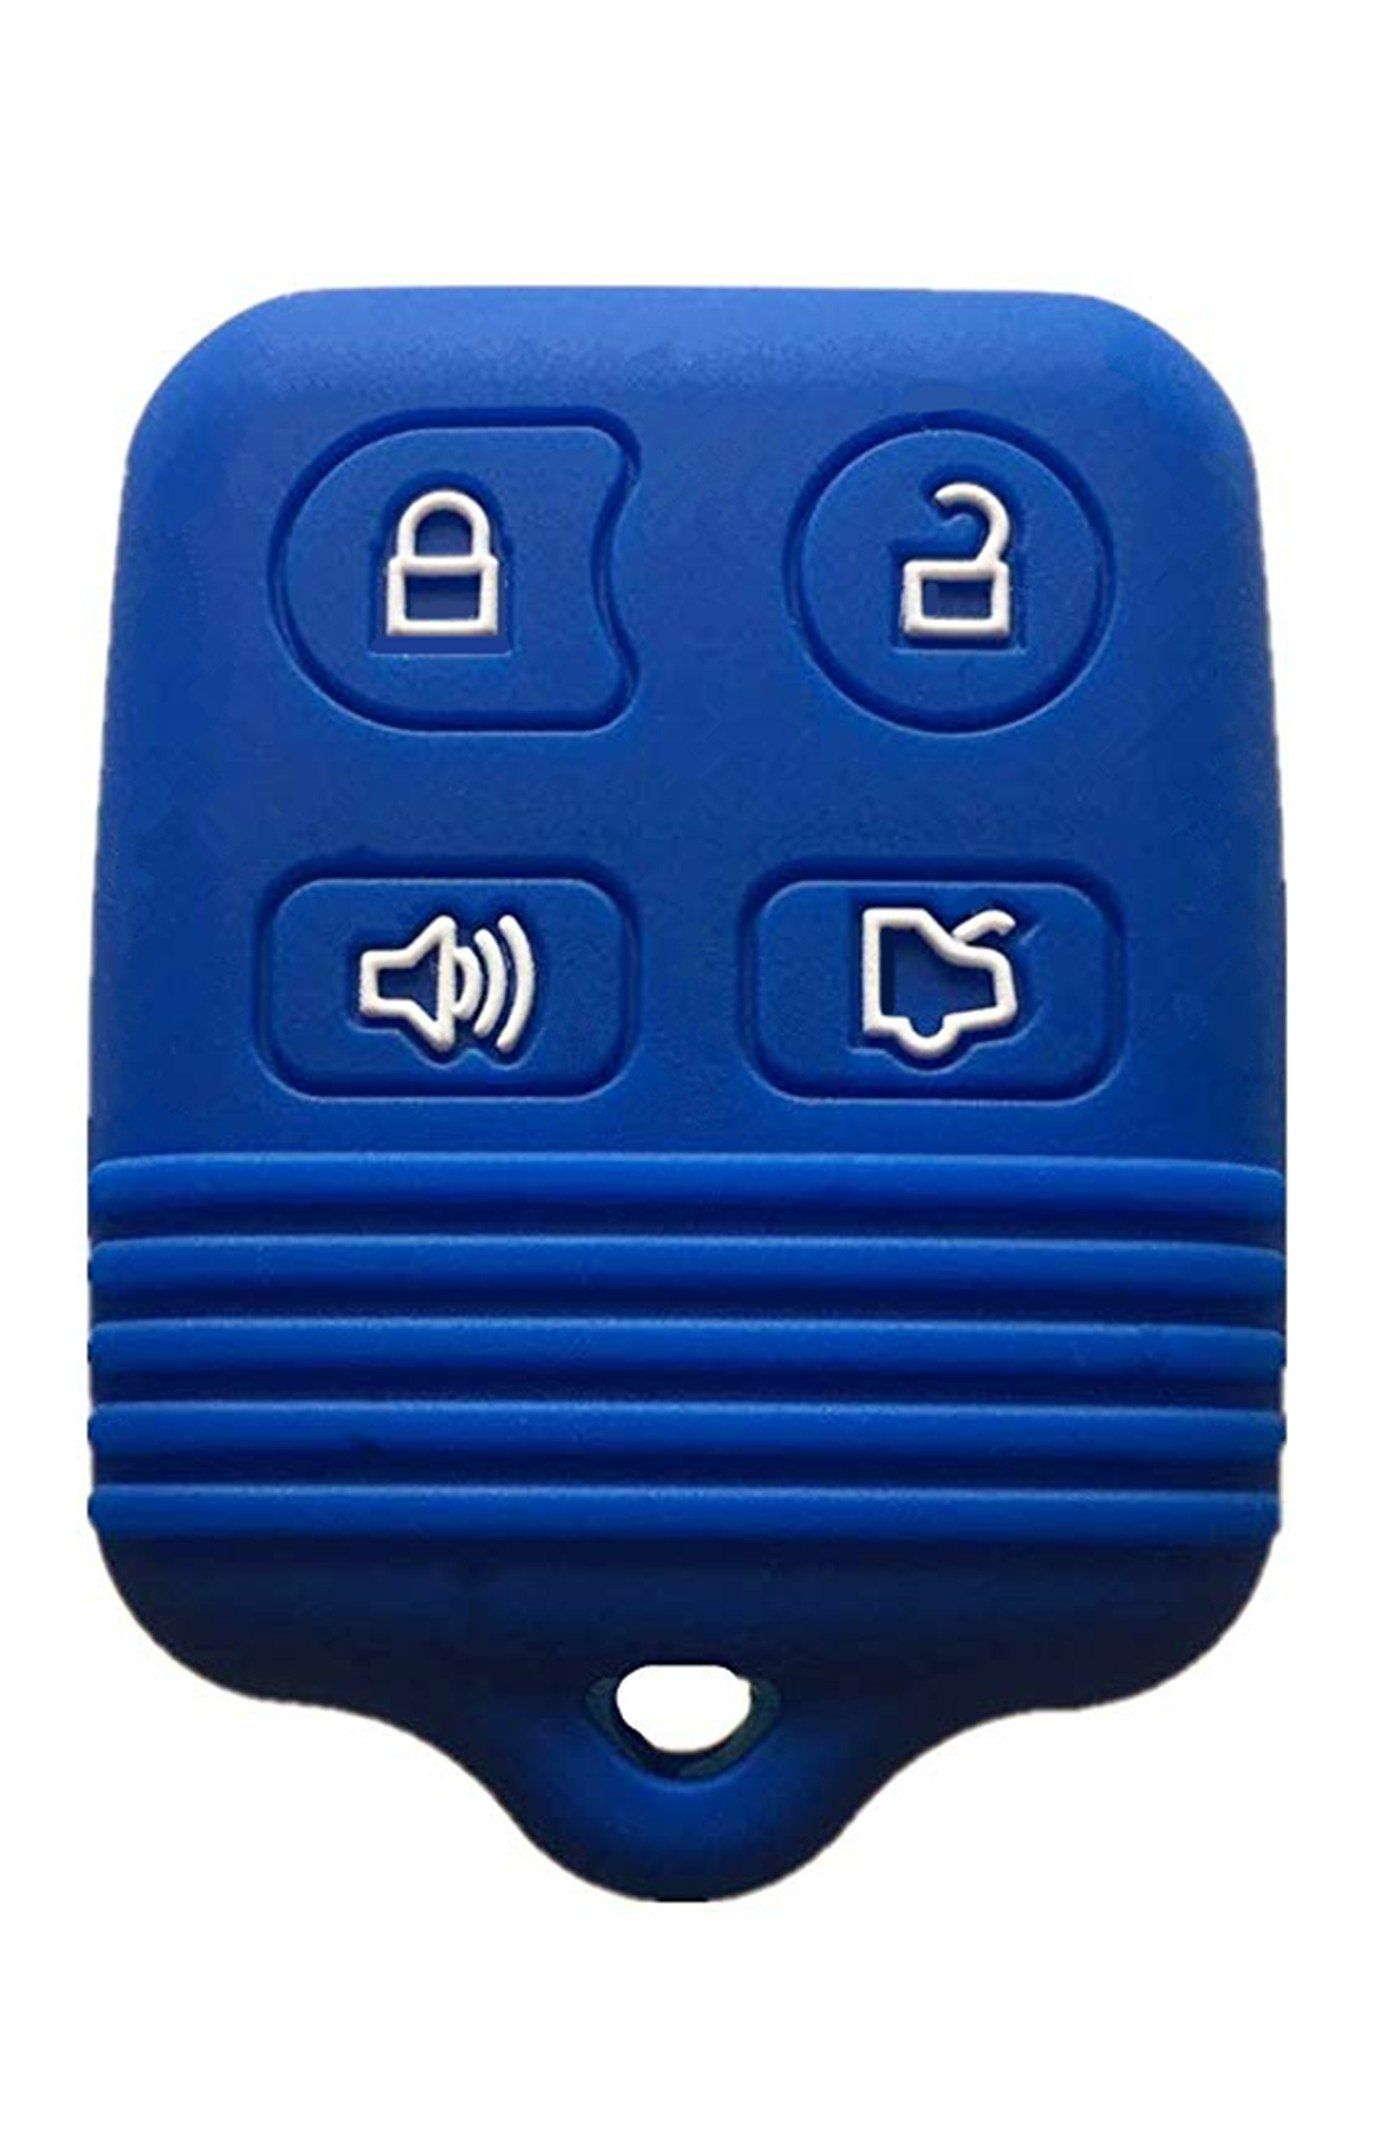 Kawihen Silicone Key Fob Cover Case Protector Smart Remote Control